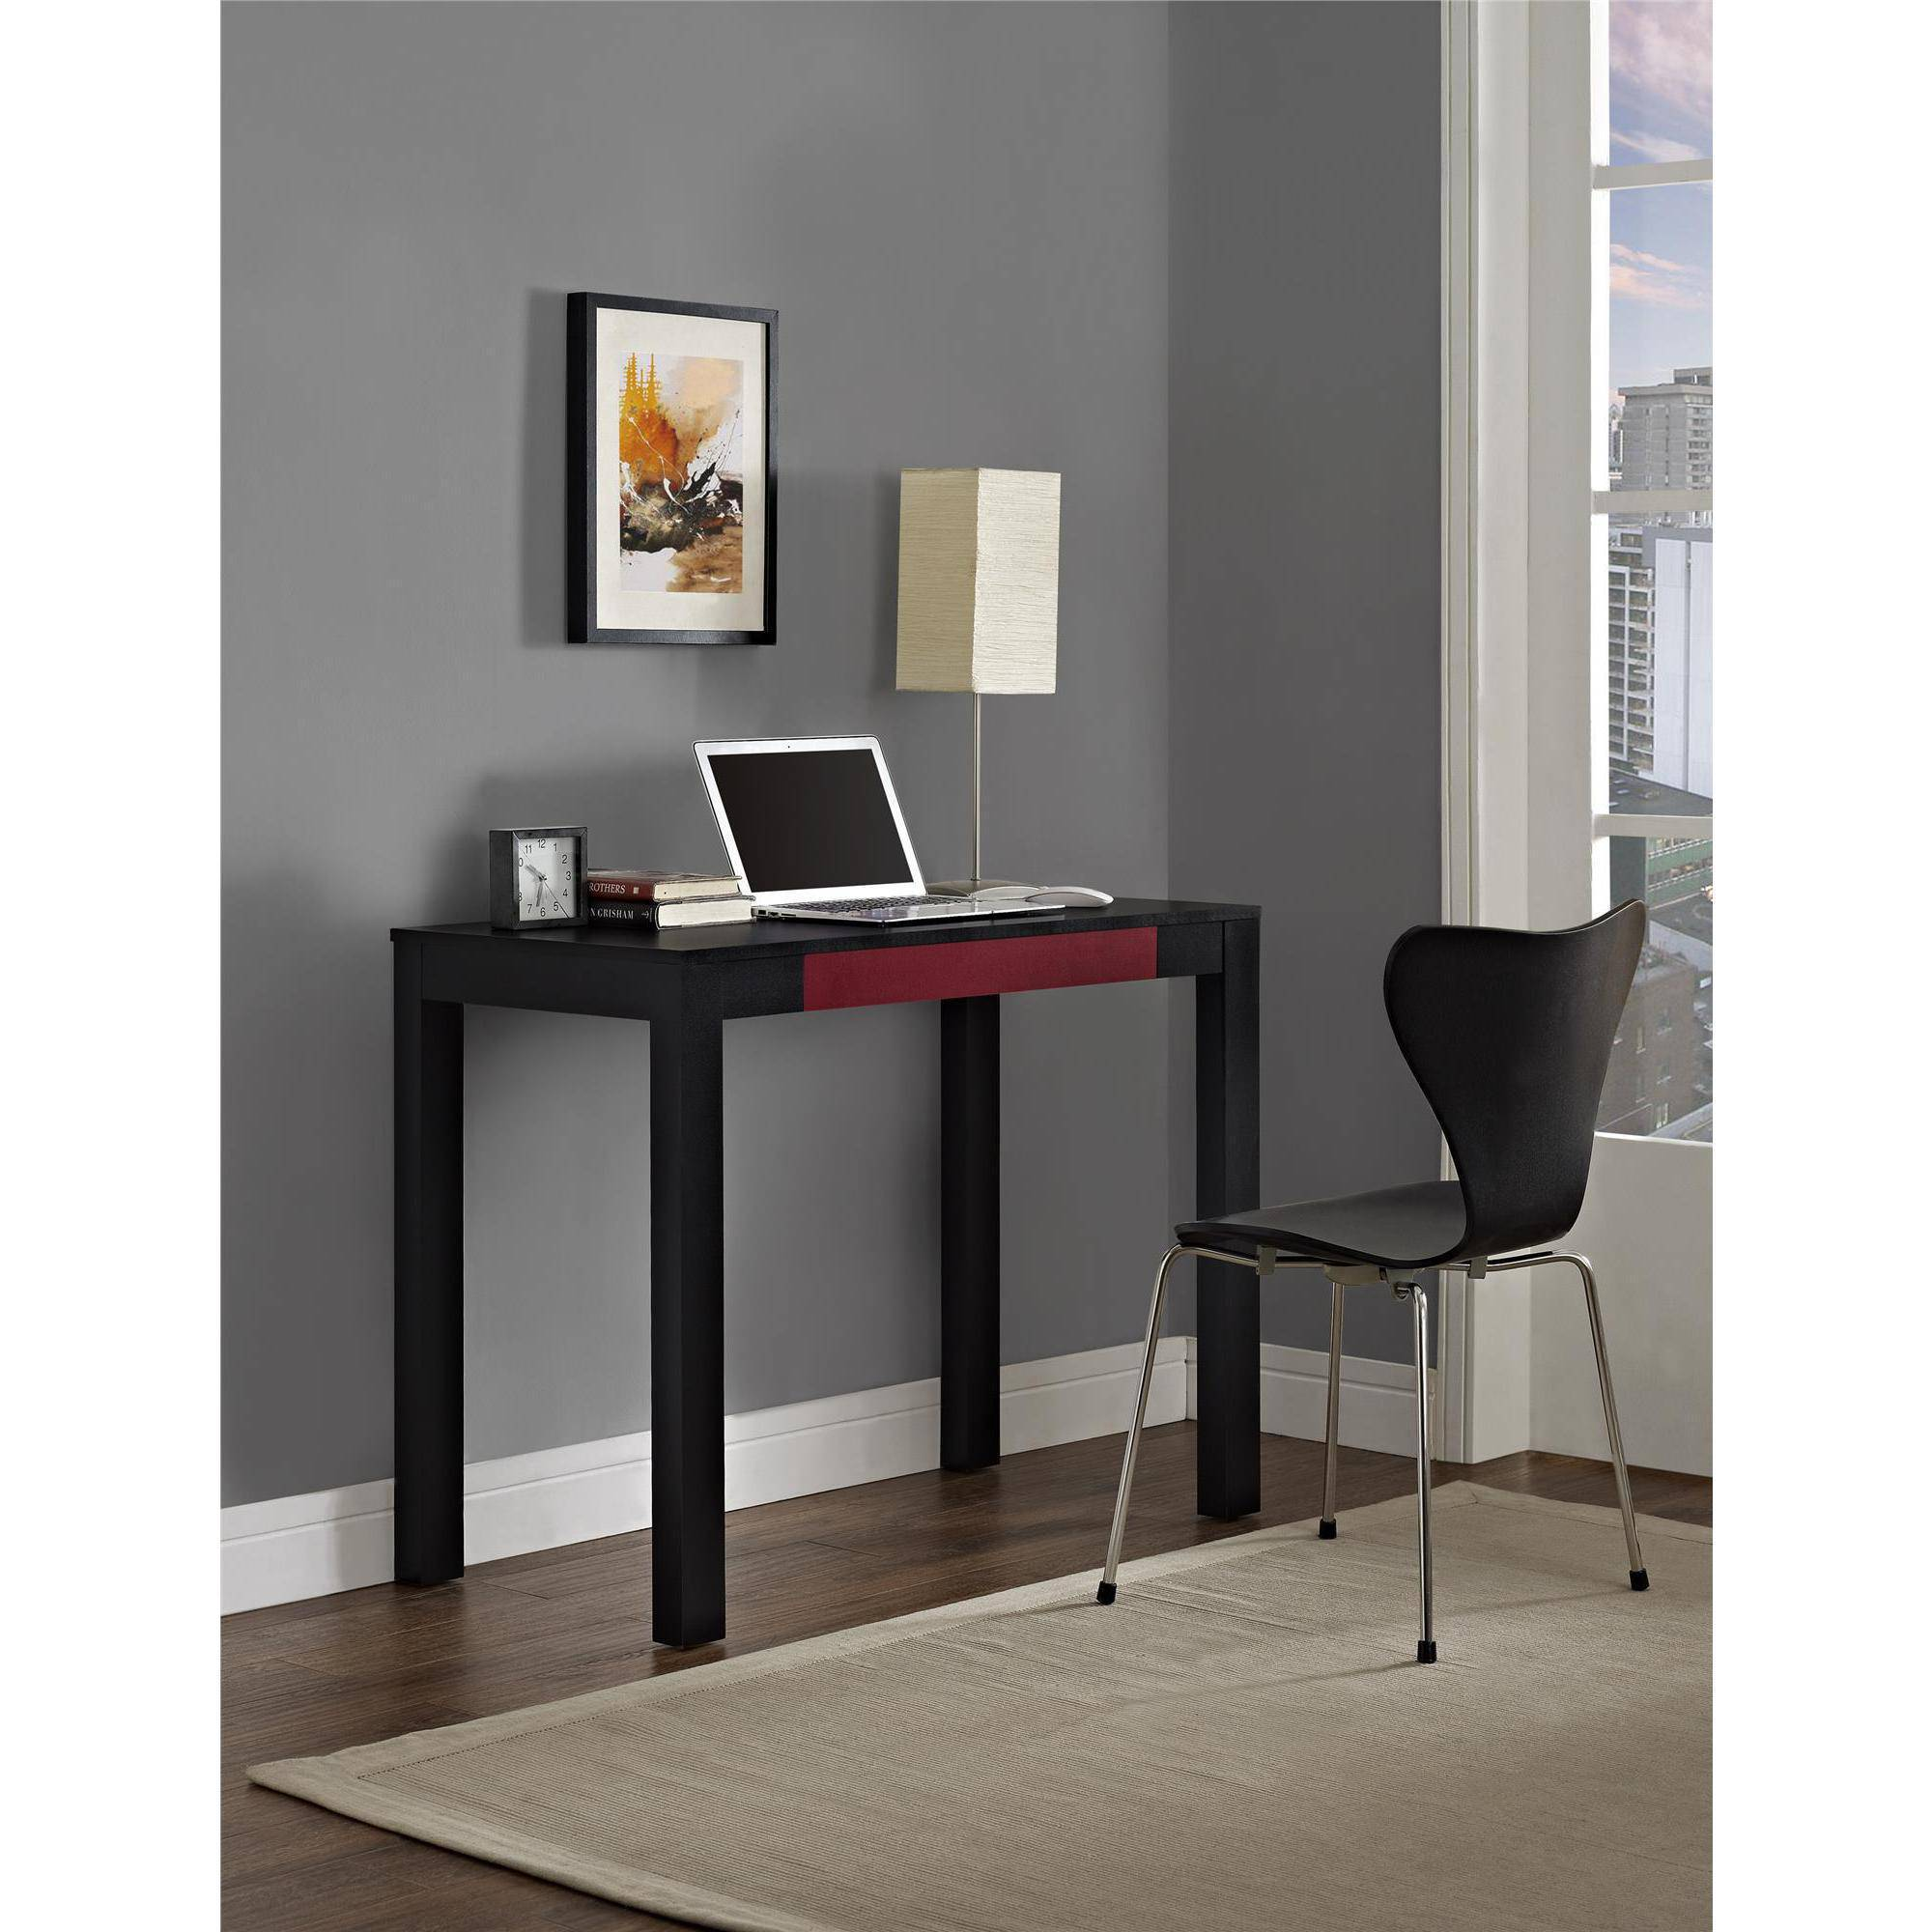 corner fice opelblitz tremendous desk small of long most elegant with hutch computer fresh workstation pc